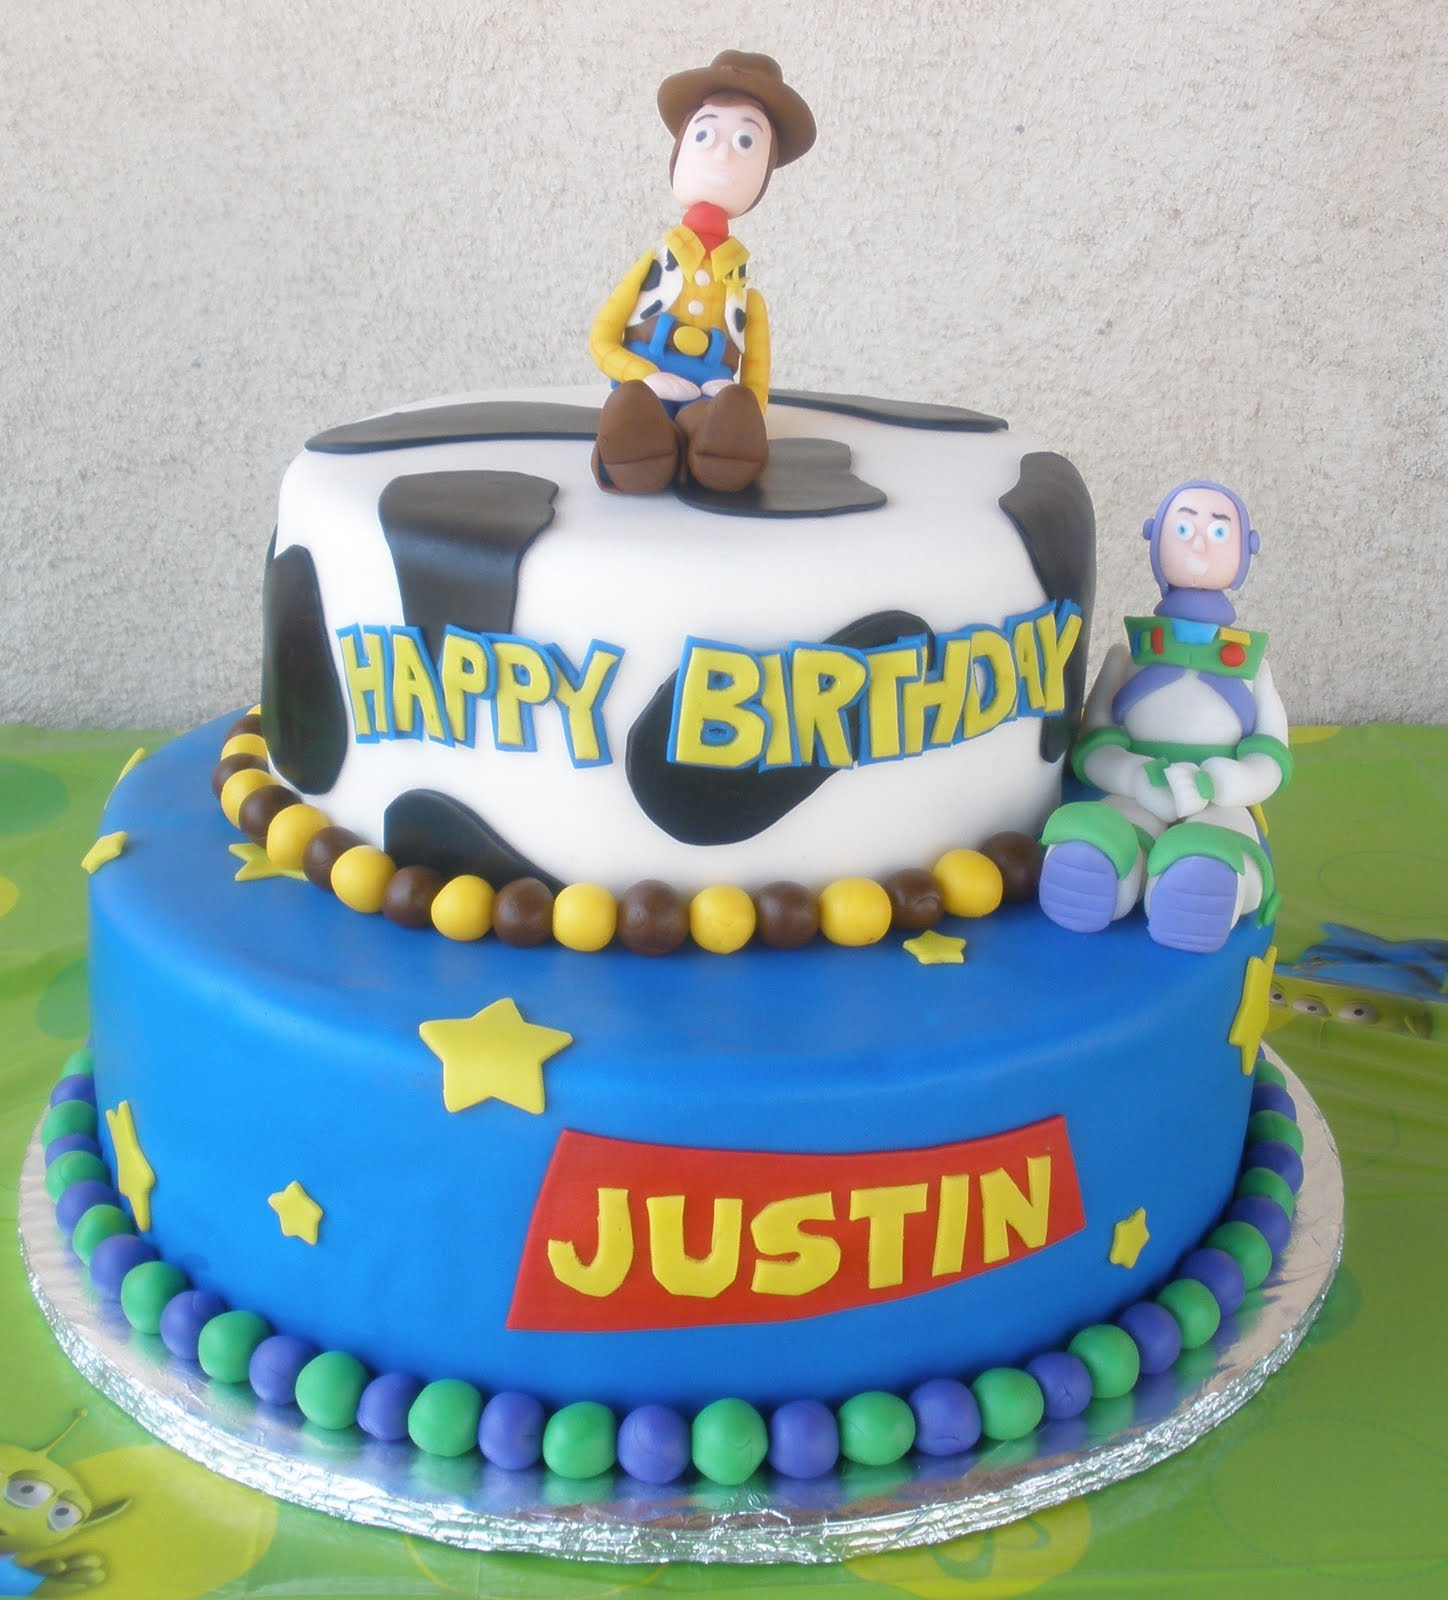 Birthday Cake Toy : Hawthornevillager view topic toy story cake